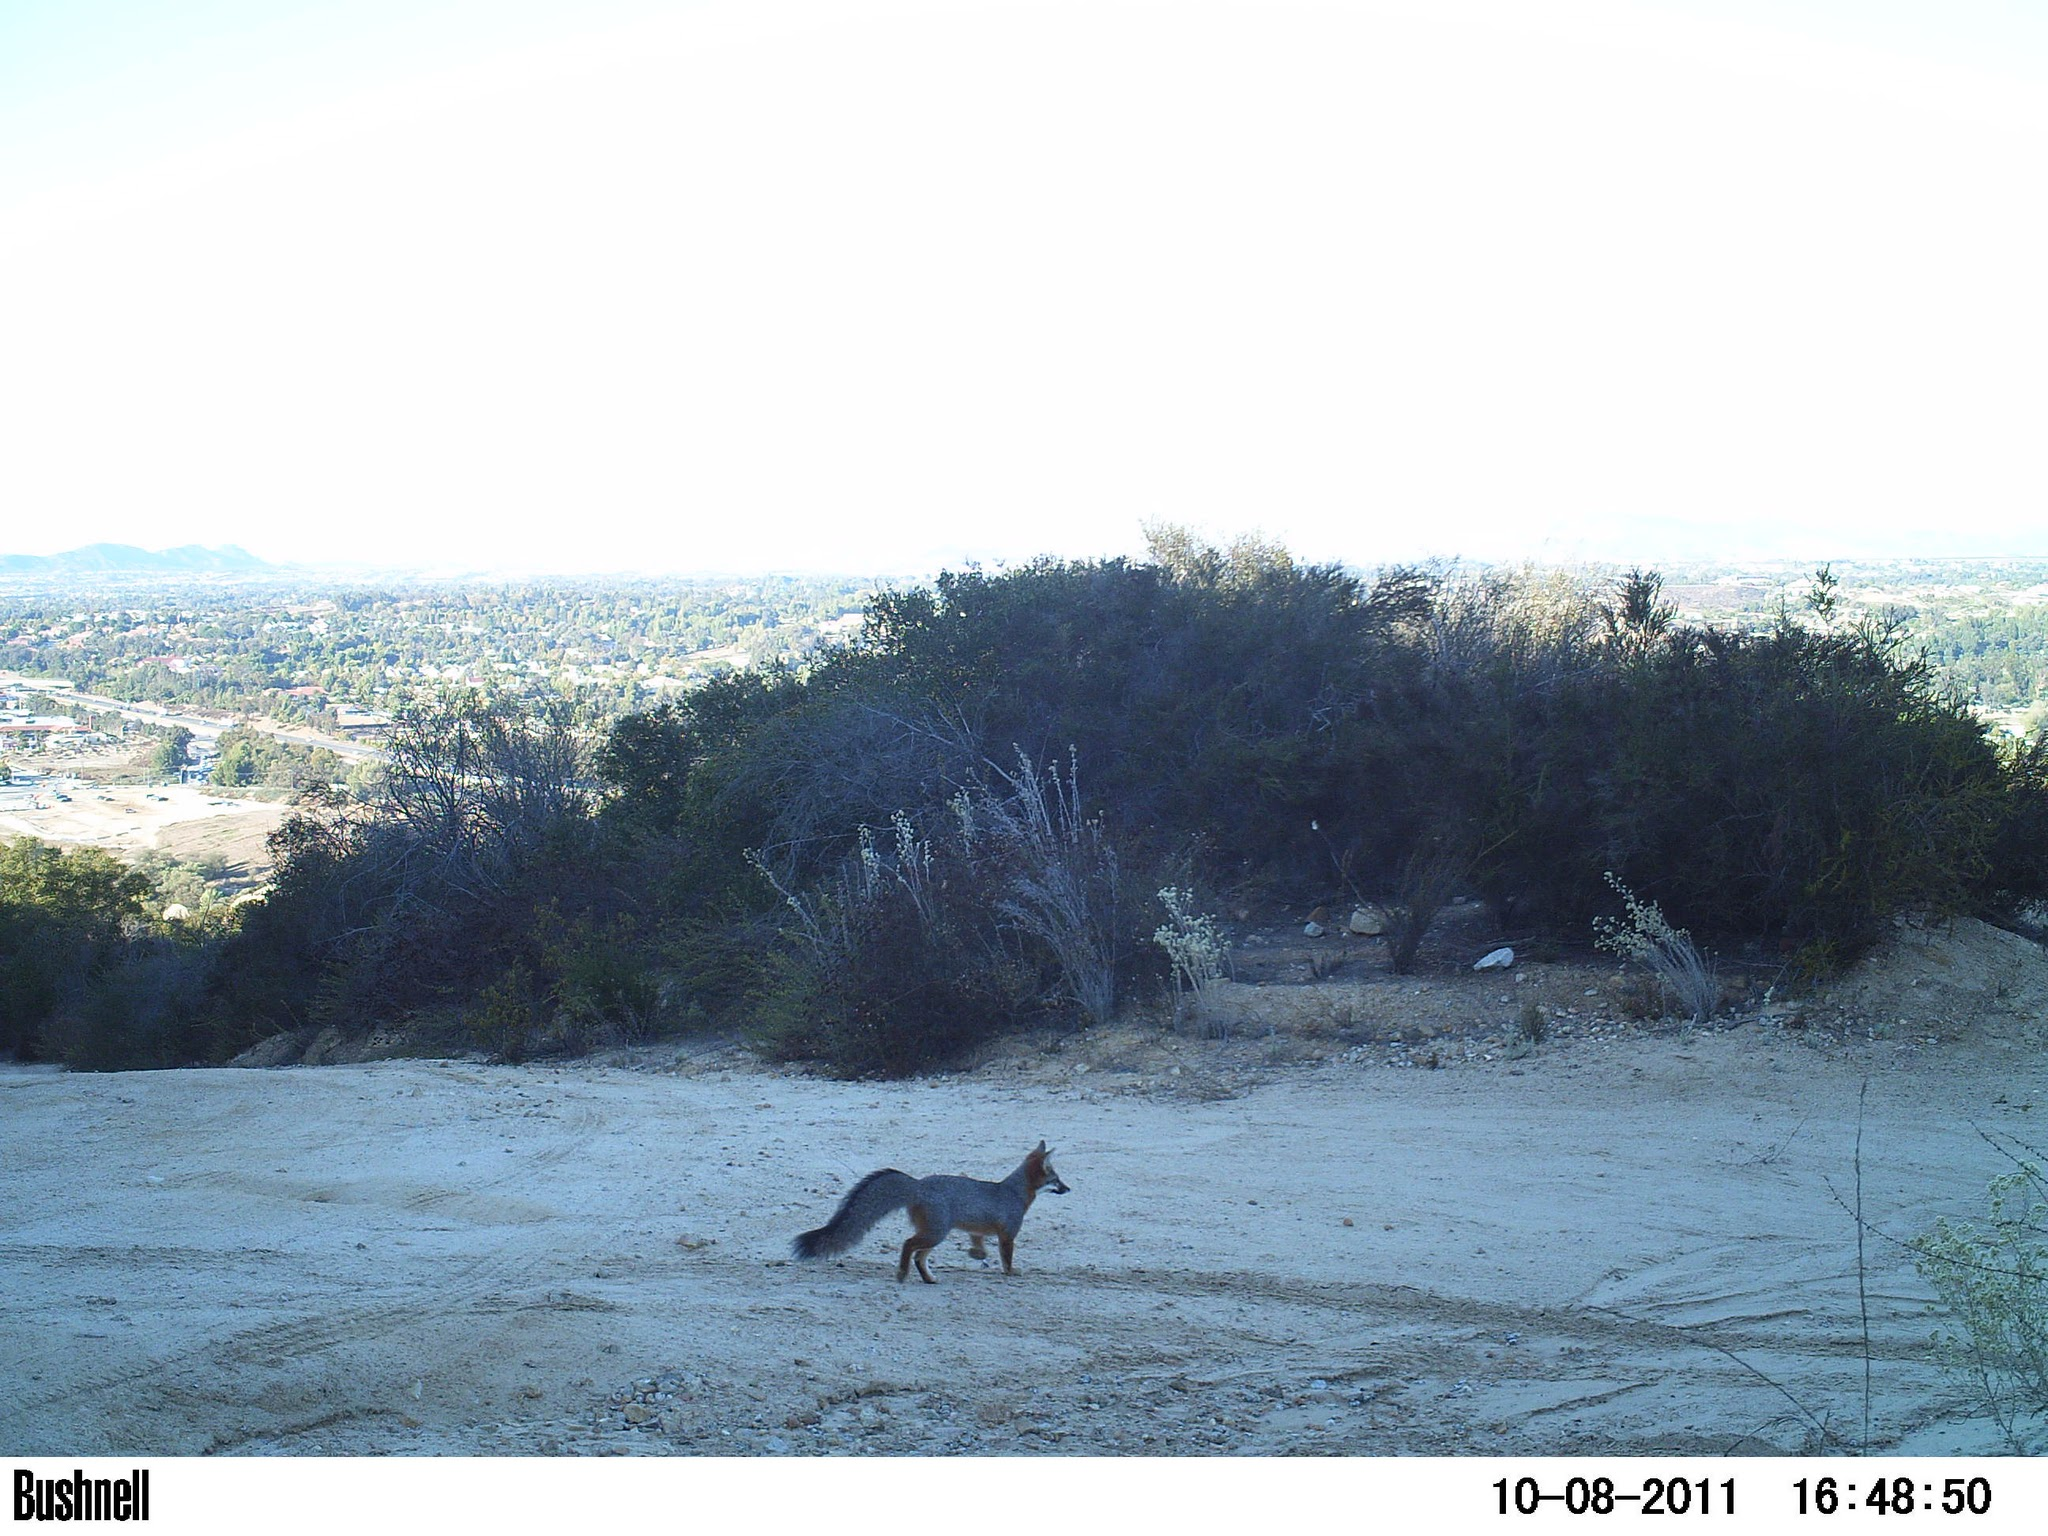 Fox with fluffy tail in a flat area, shrubs in background, city in extreme background